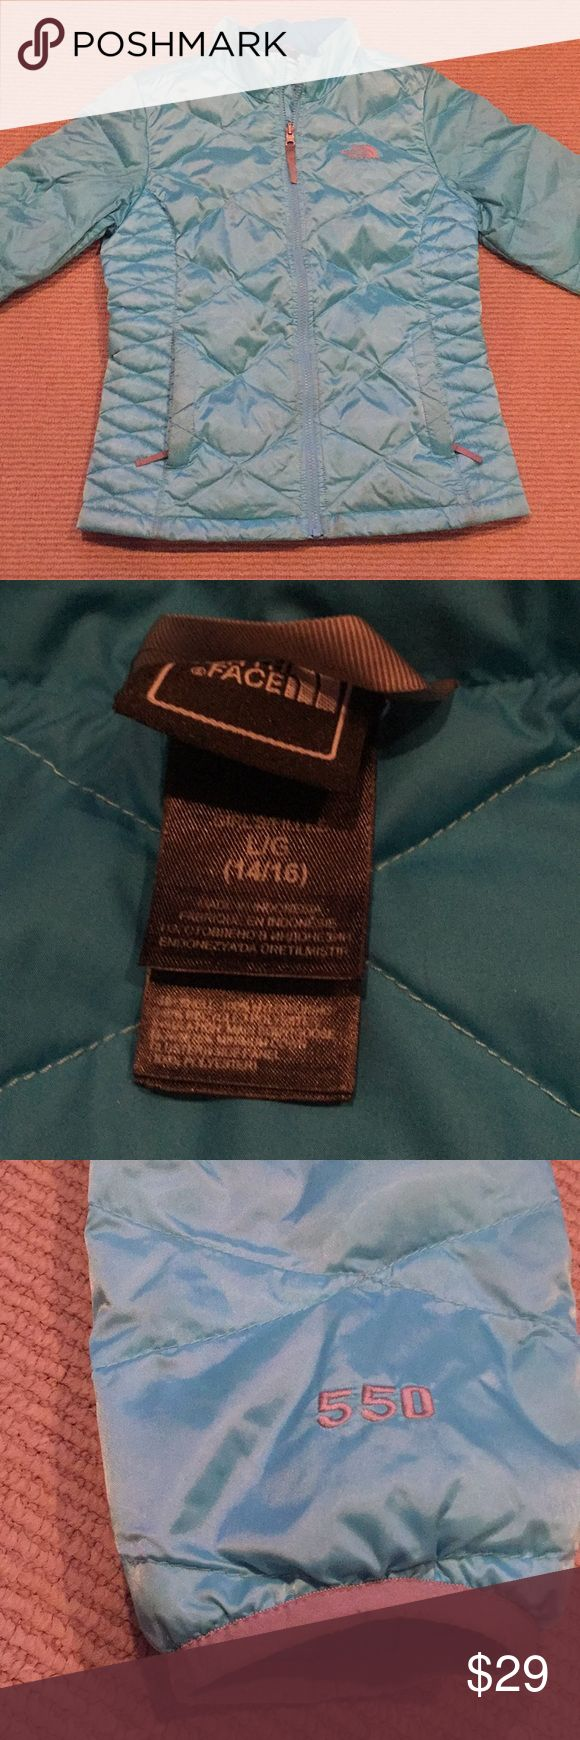 Girls North Face Aconcagua Jacket North Face size large (14/16) jacket. 550 down fill, zip up jacket. 2 zippered pockets. A few marks by bottom of jacket by the zipper as pictured. North Face Jackets & Coats Puffers